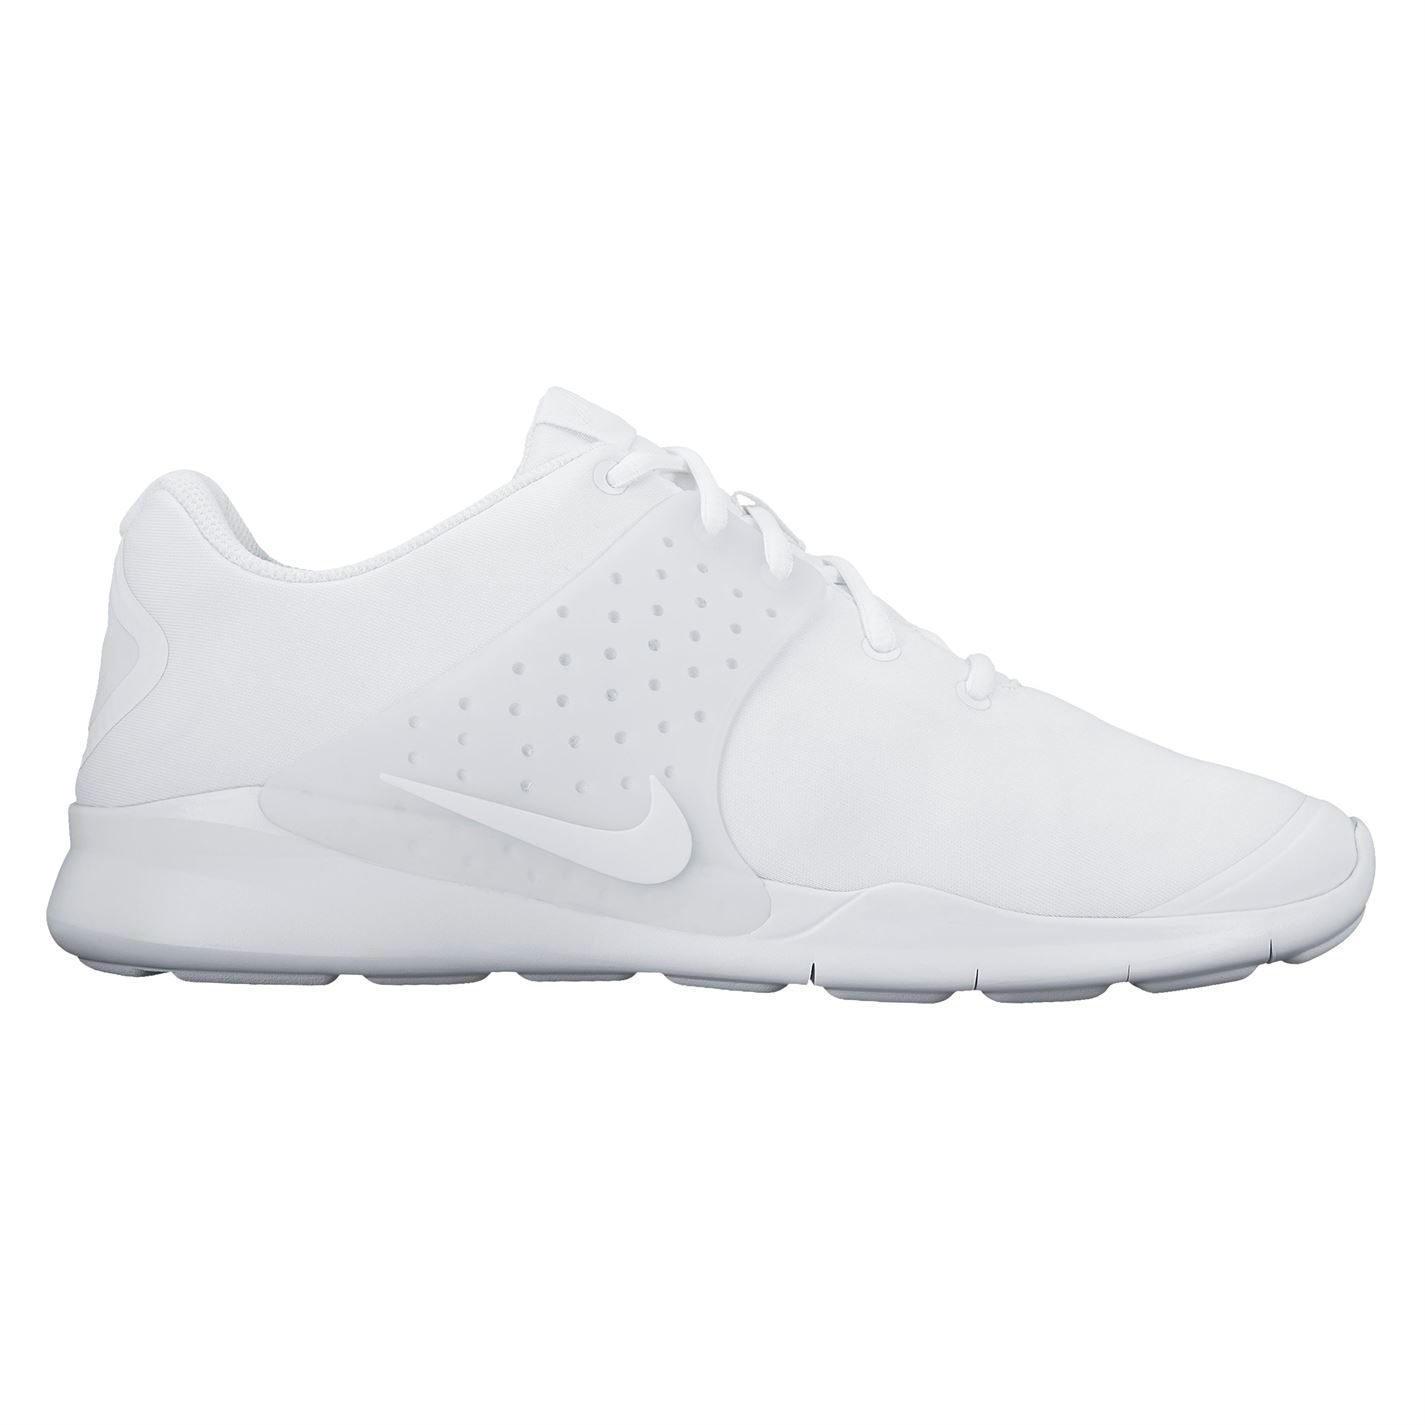 Details about Nike Arrowz Trainers Mens White Sports Shoes Sneakers